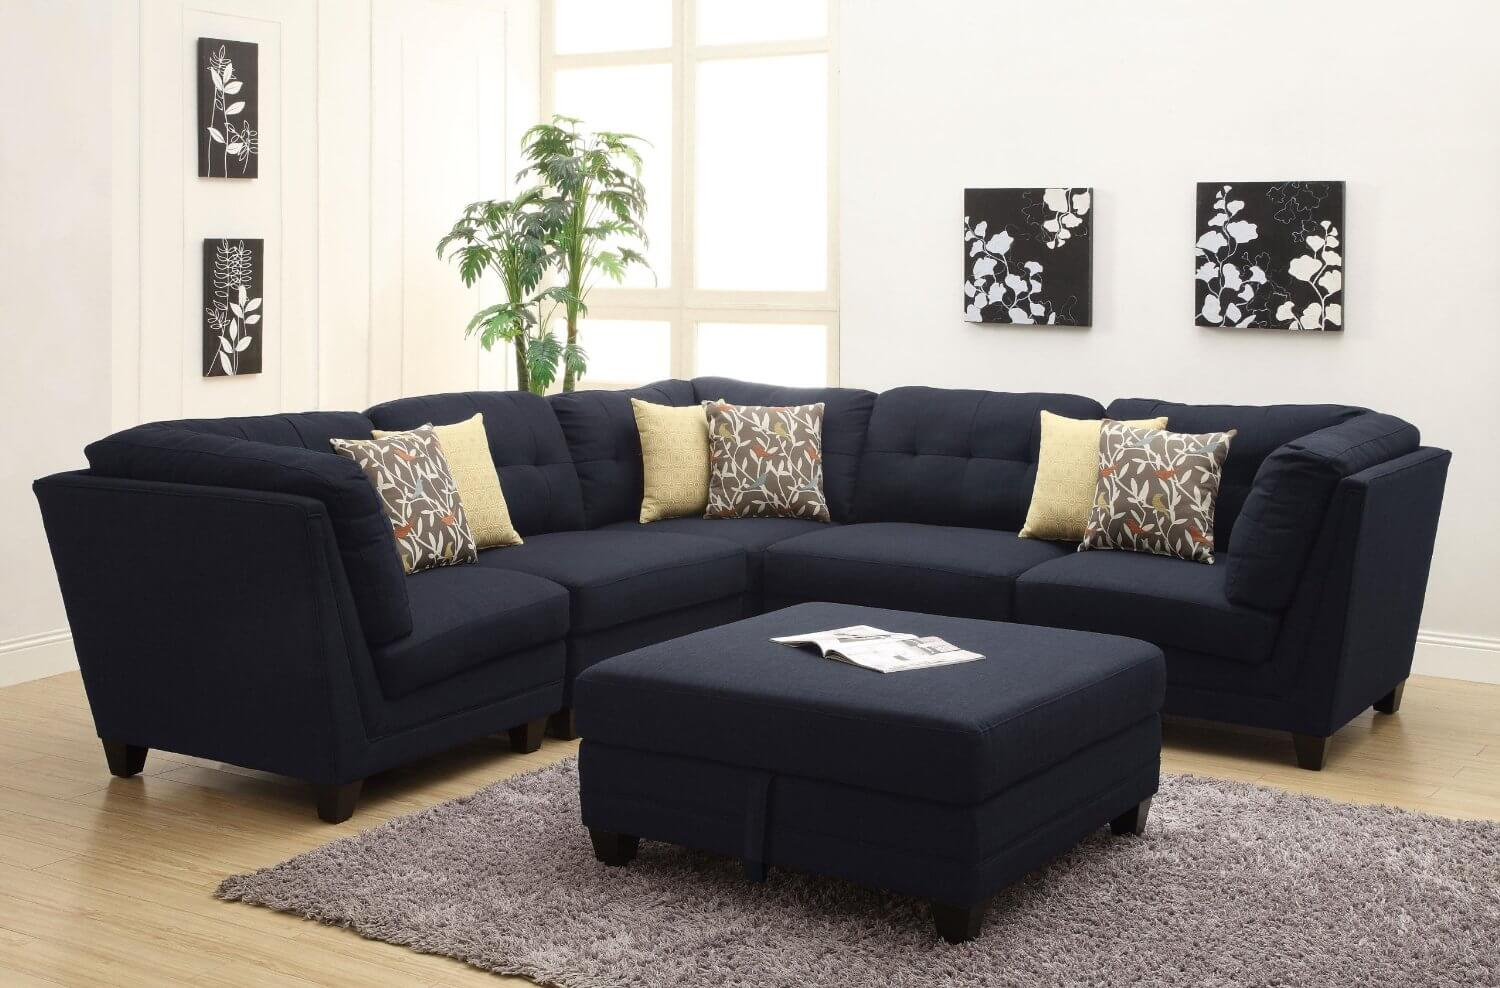 37 Beautiful Sectional Sofas Under 1000 : 1Am sectional1000 from www.homestratosphere.com size 1500 x 988 jpeg 153kB